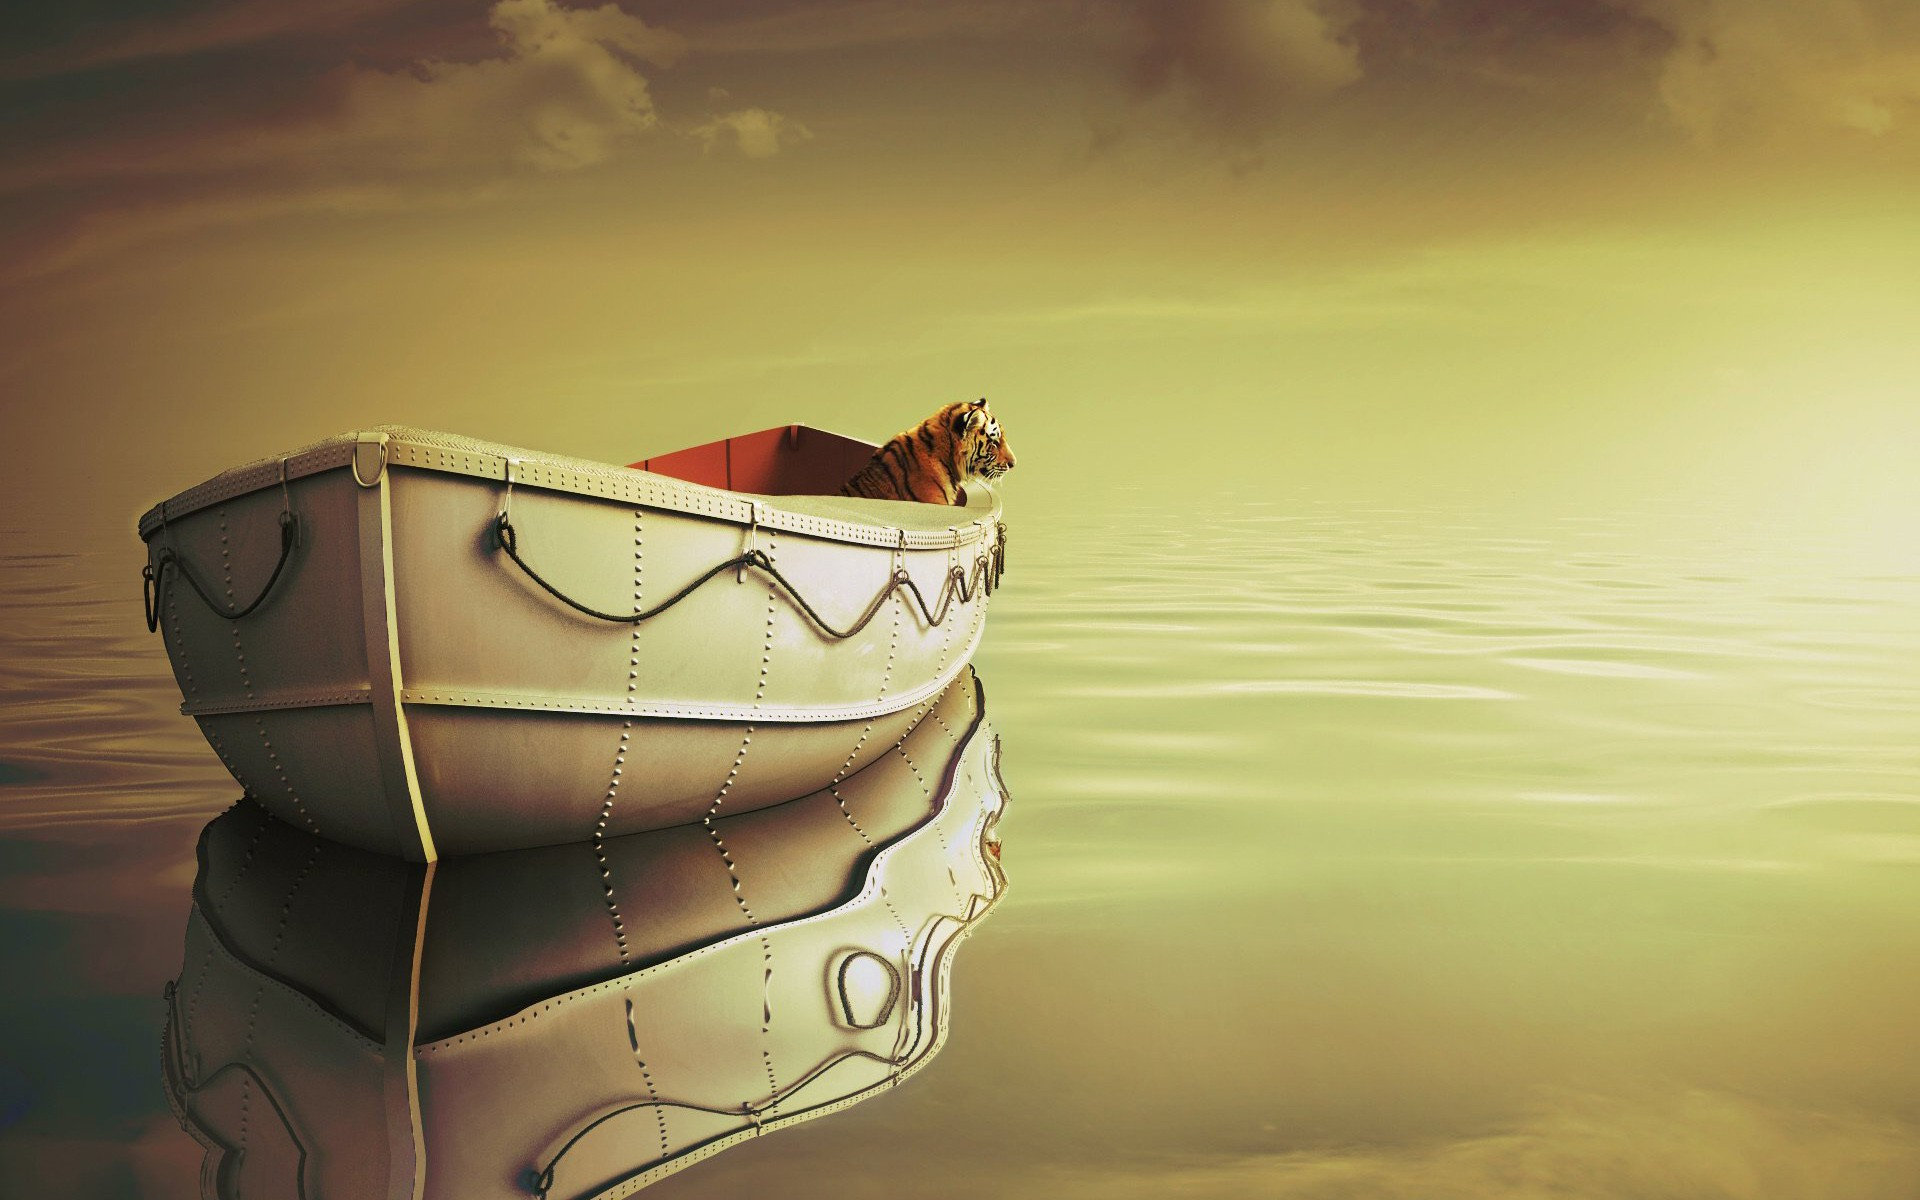 Life Of Pi Boat, HD Movies, 4k Wallpapers, Images